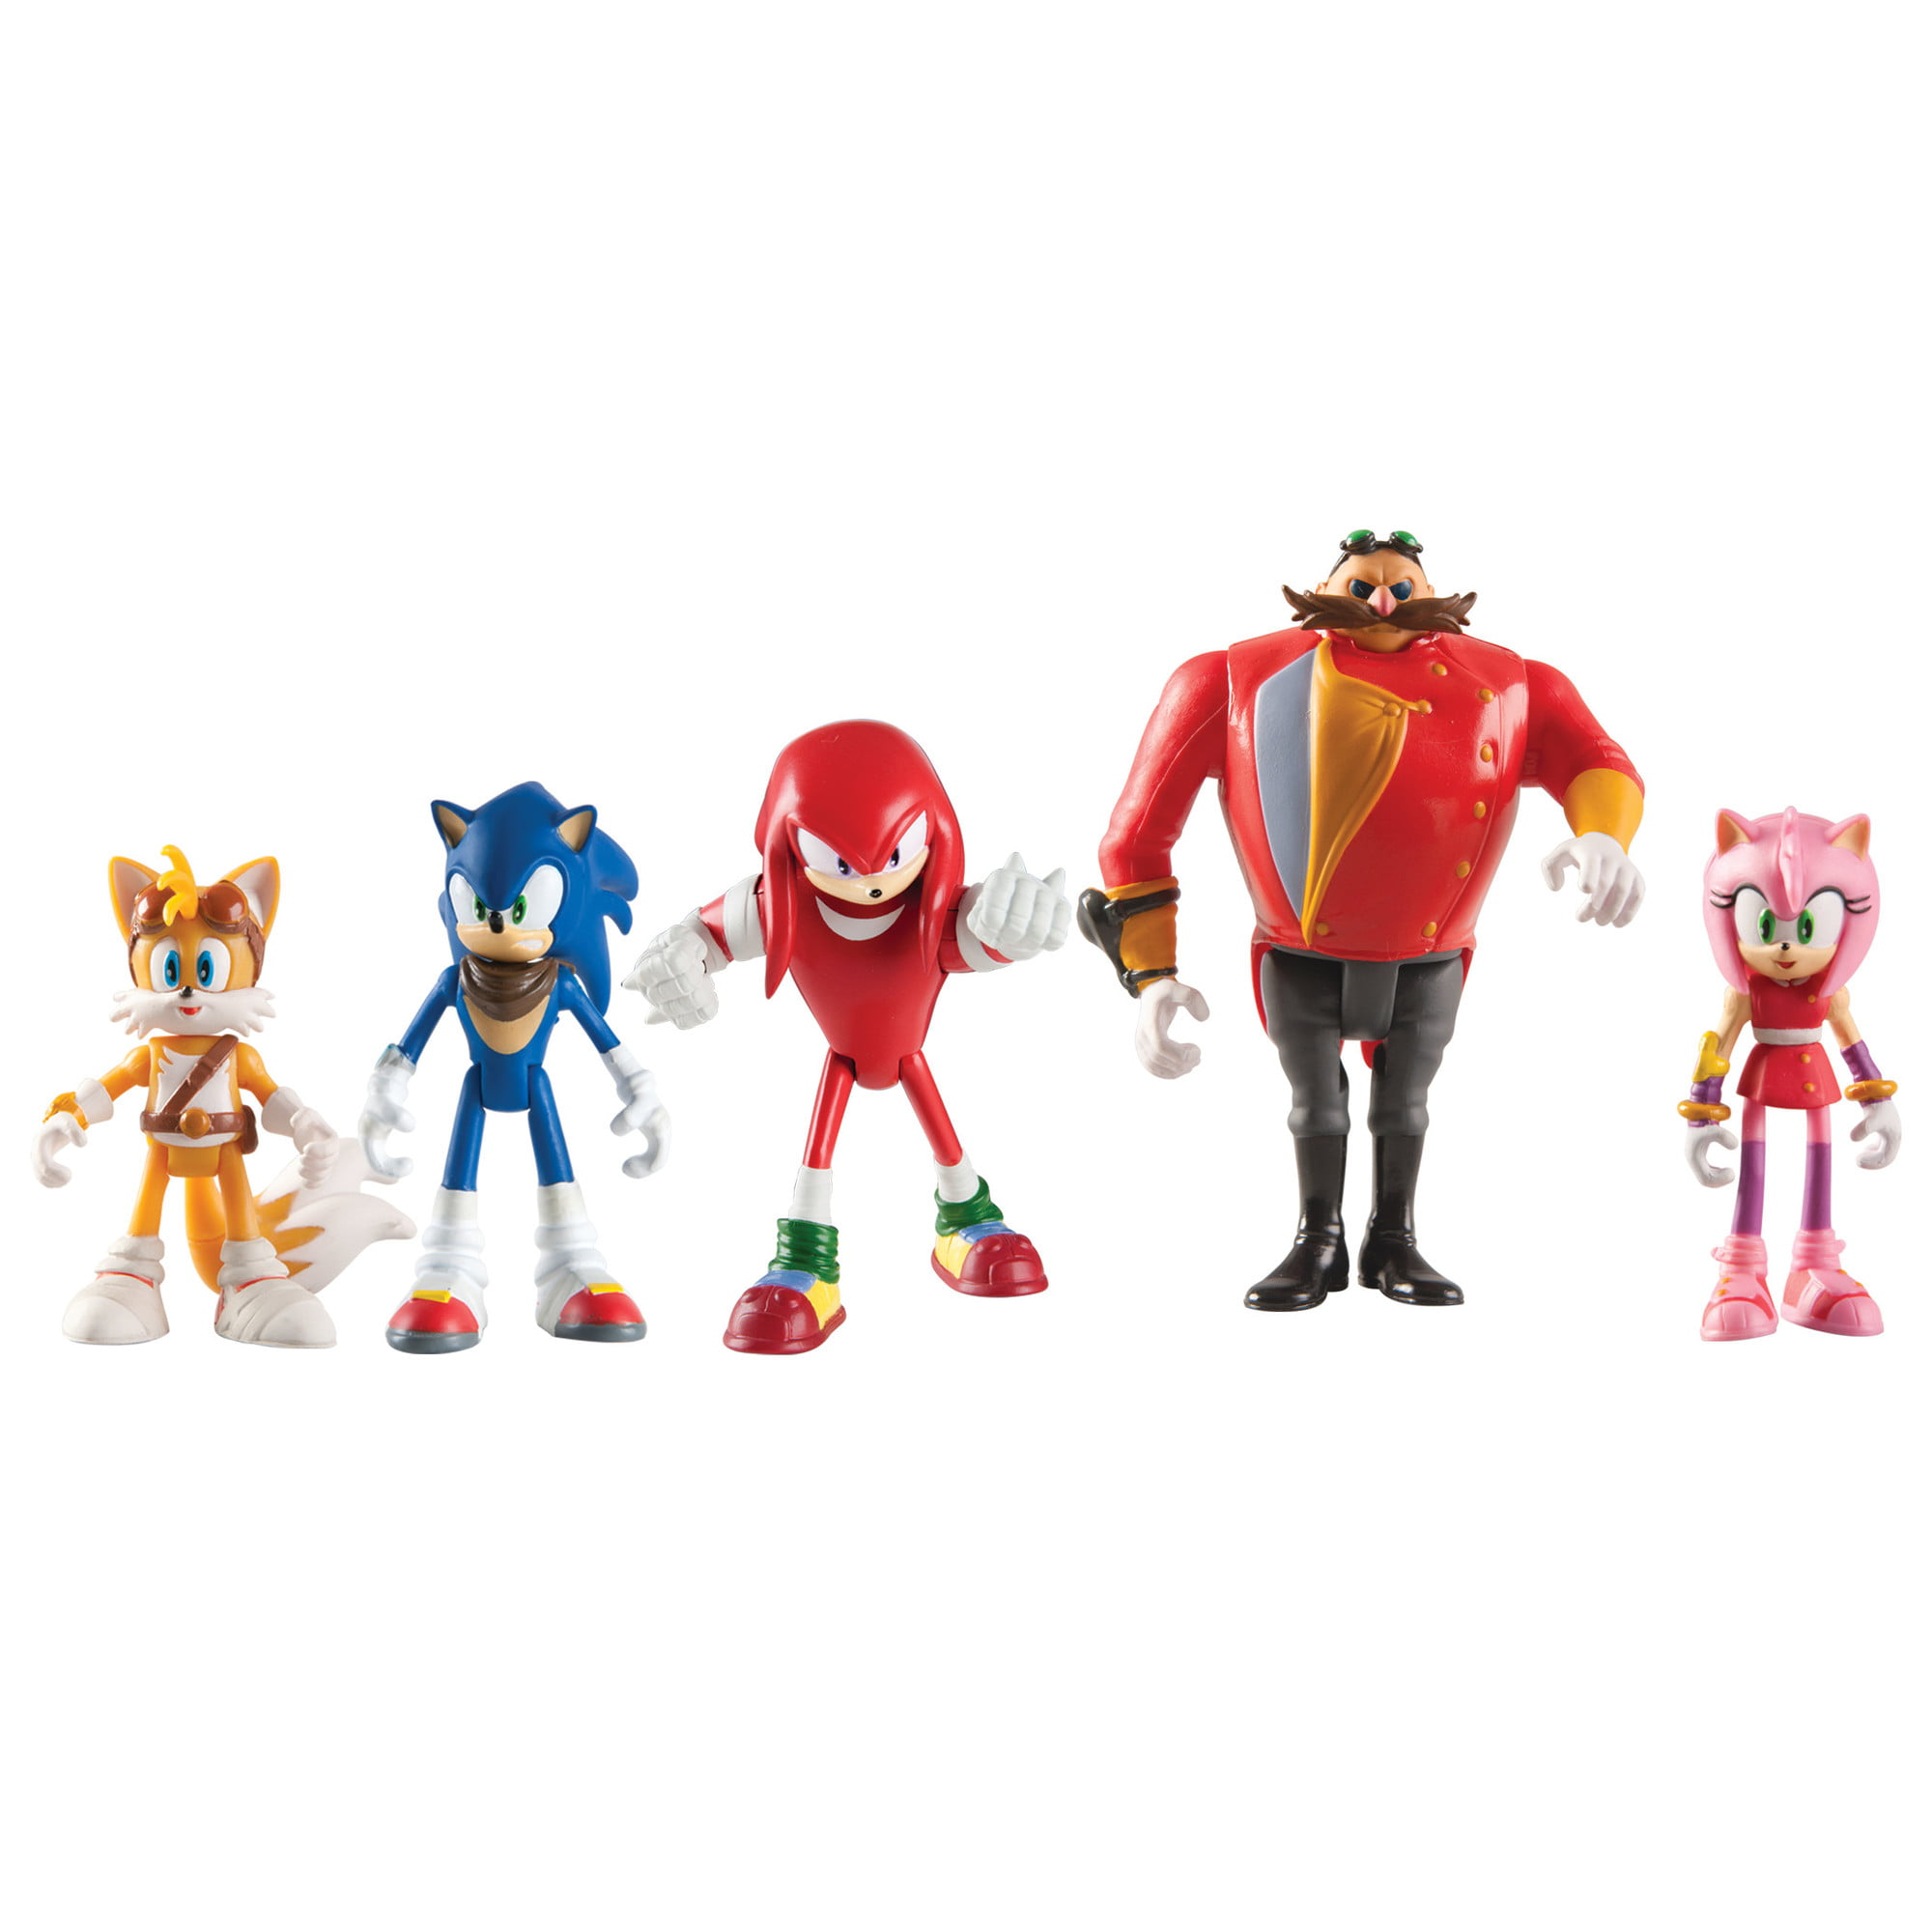 Sonic The Hedgehog Sonic Boom Multi Figure Pack Articulated Action Figure Set 5 Ct Walmart Com Walmart Com